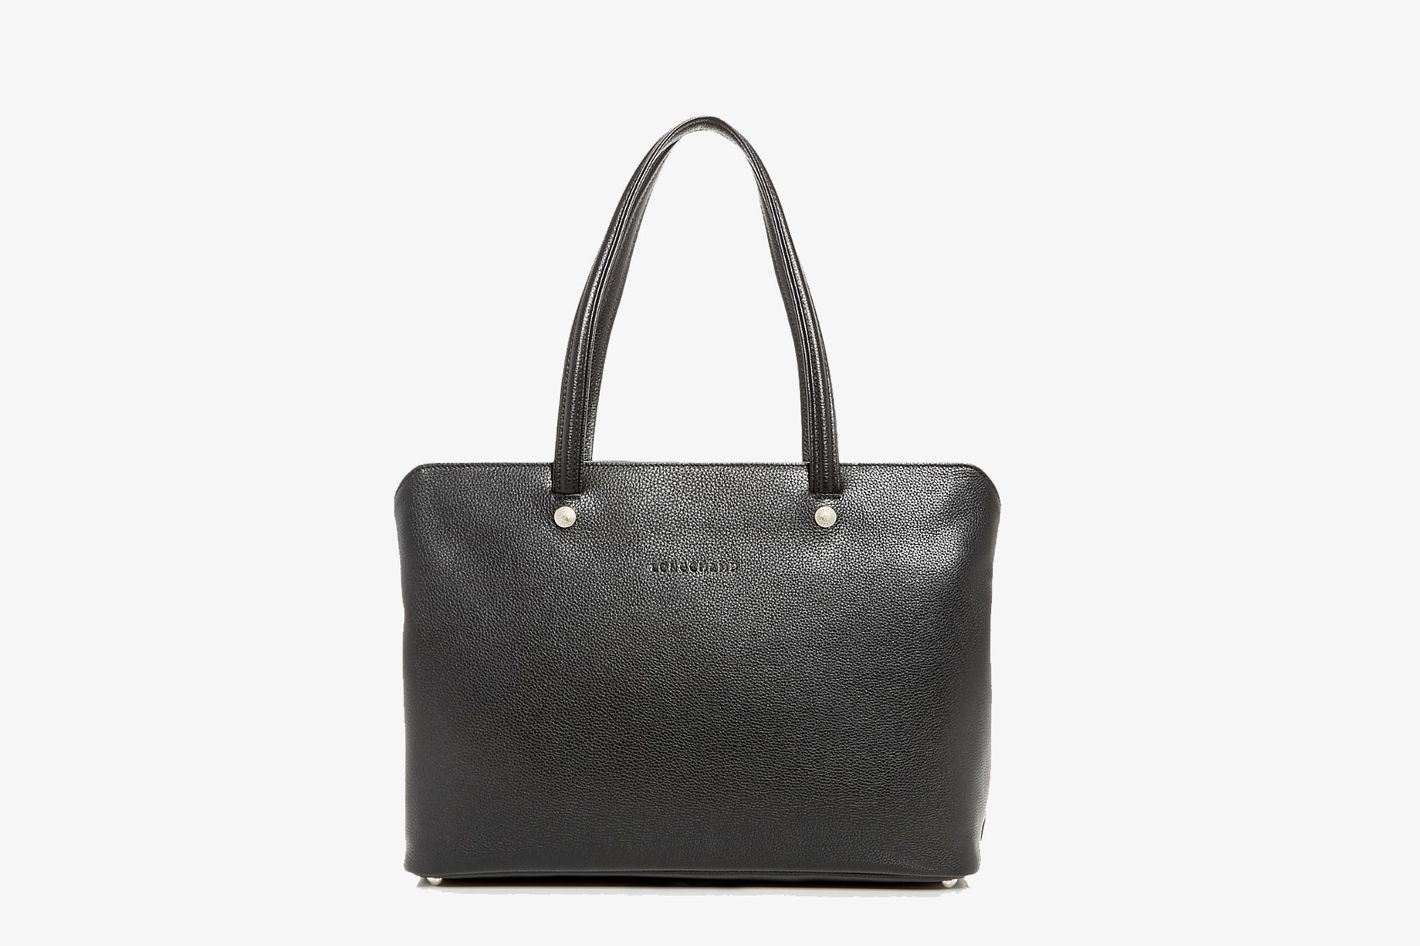 The New Work Bag Longchamp Le Foulonne Leather Tote